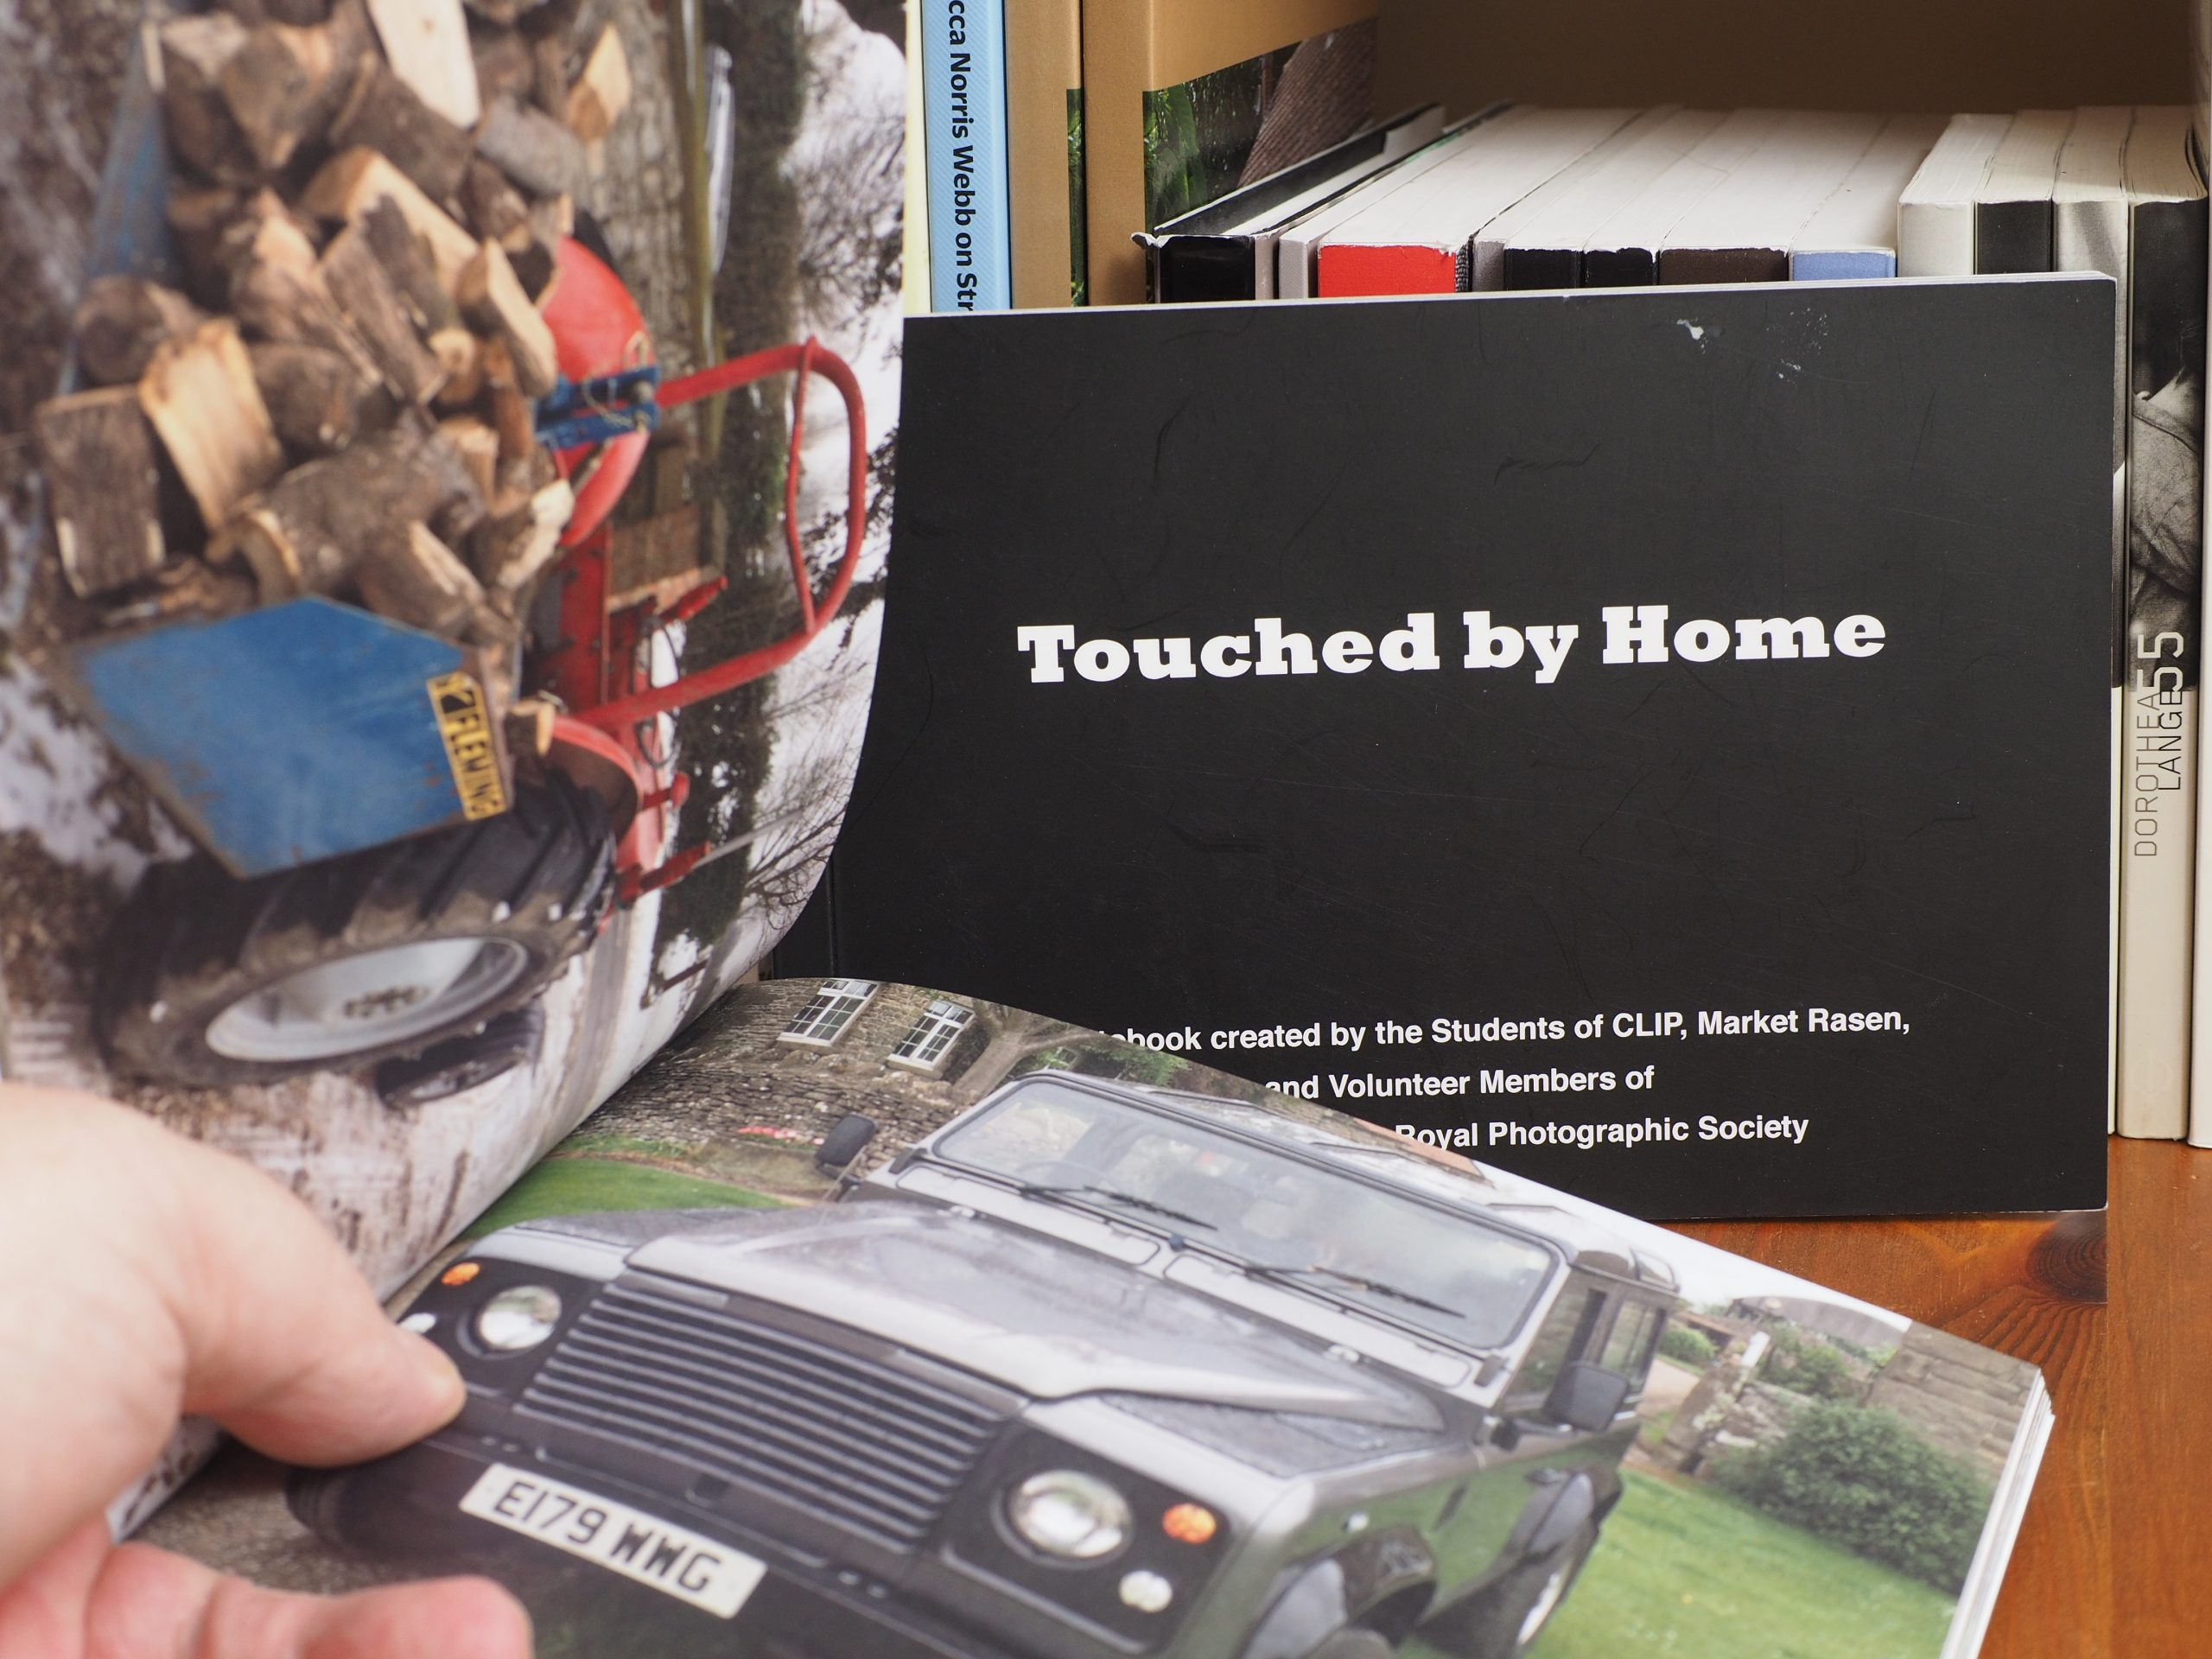 Touched by Home